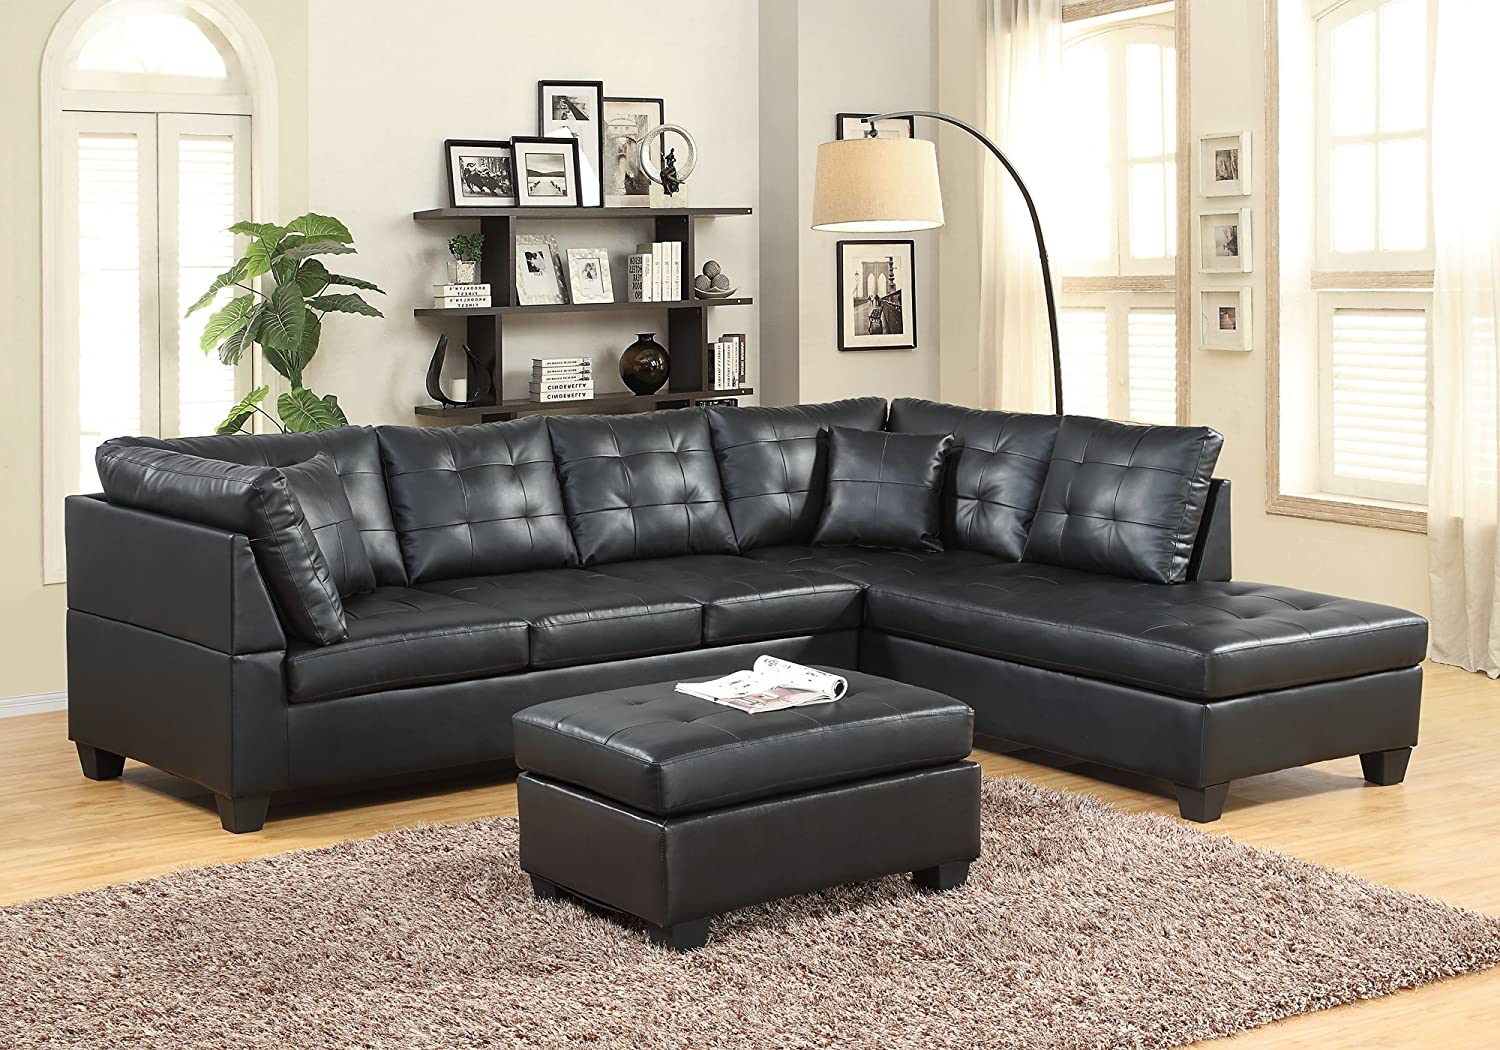 Amazon com gtu furniture pu leather living room furniture sectional sofa set in black red with ottoman black kitchen dining